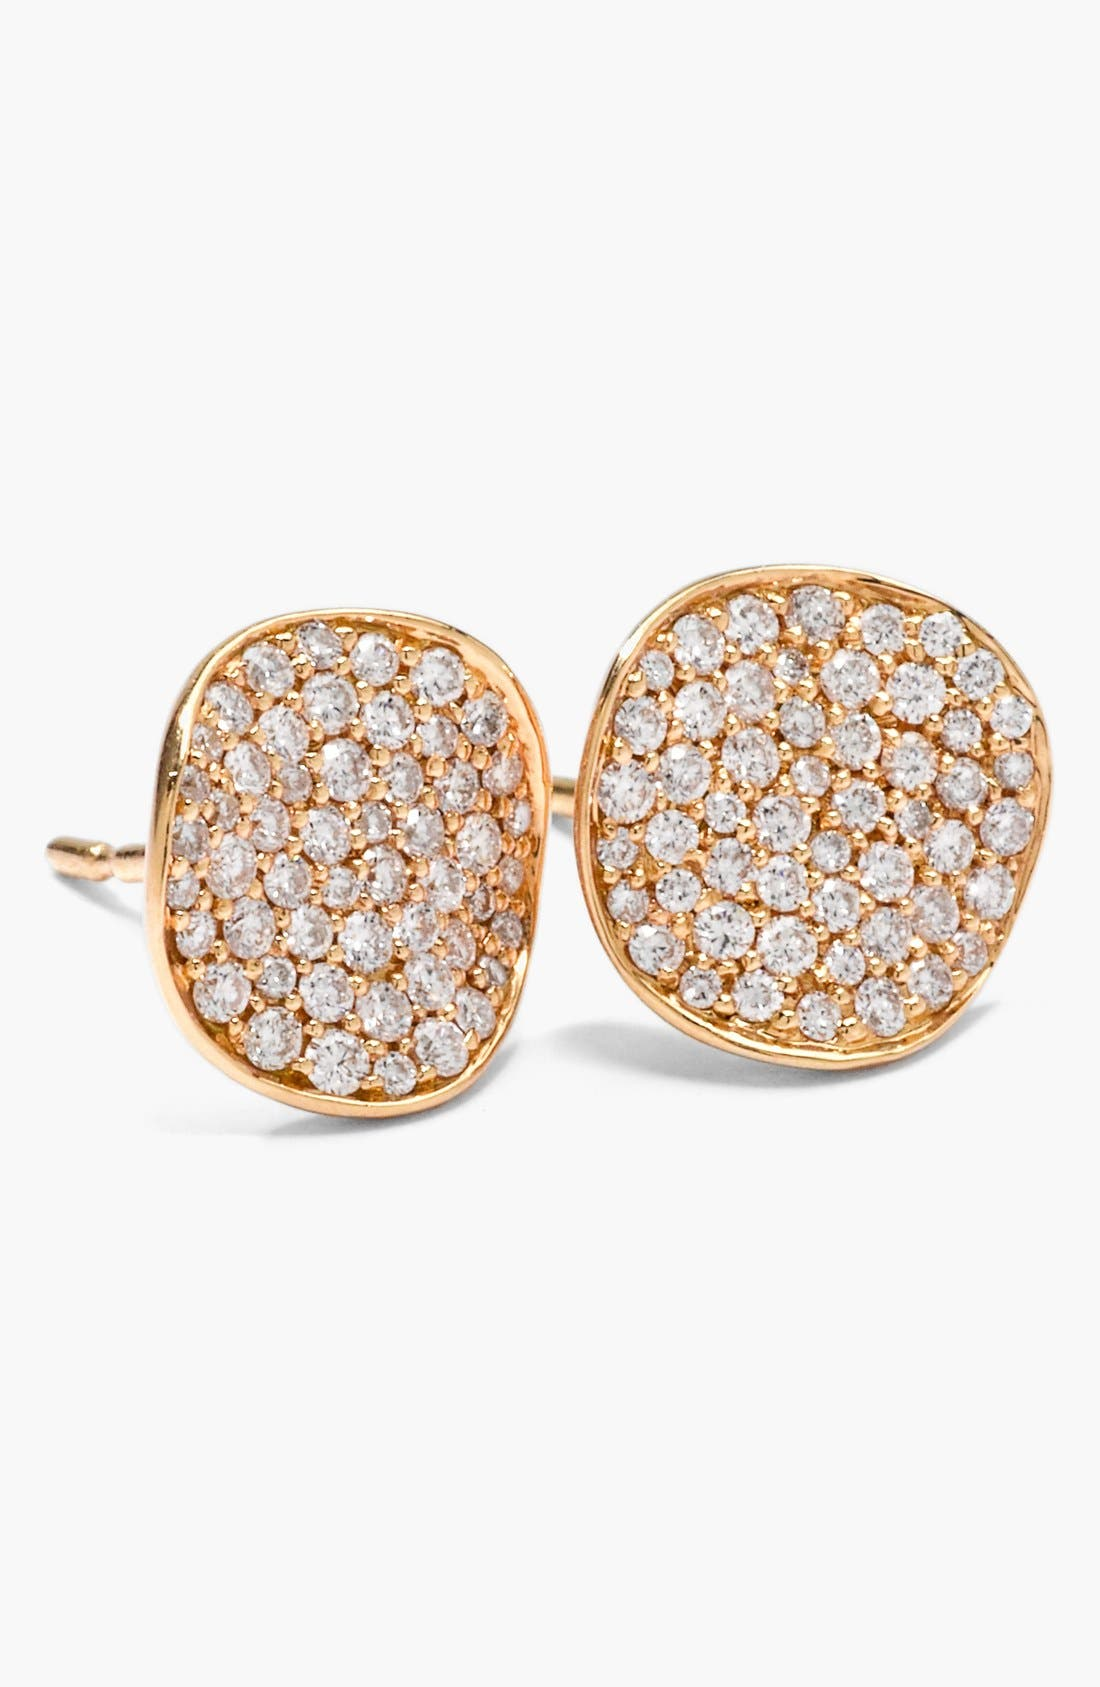 Alternate Image 1 Selected - Ippolita 'Stardust' 18k Gold & Diamond Disc Earrings